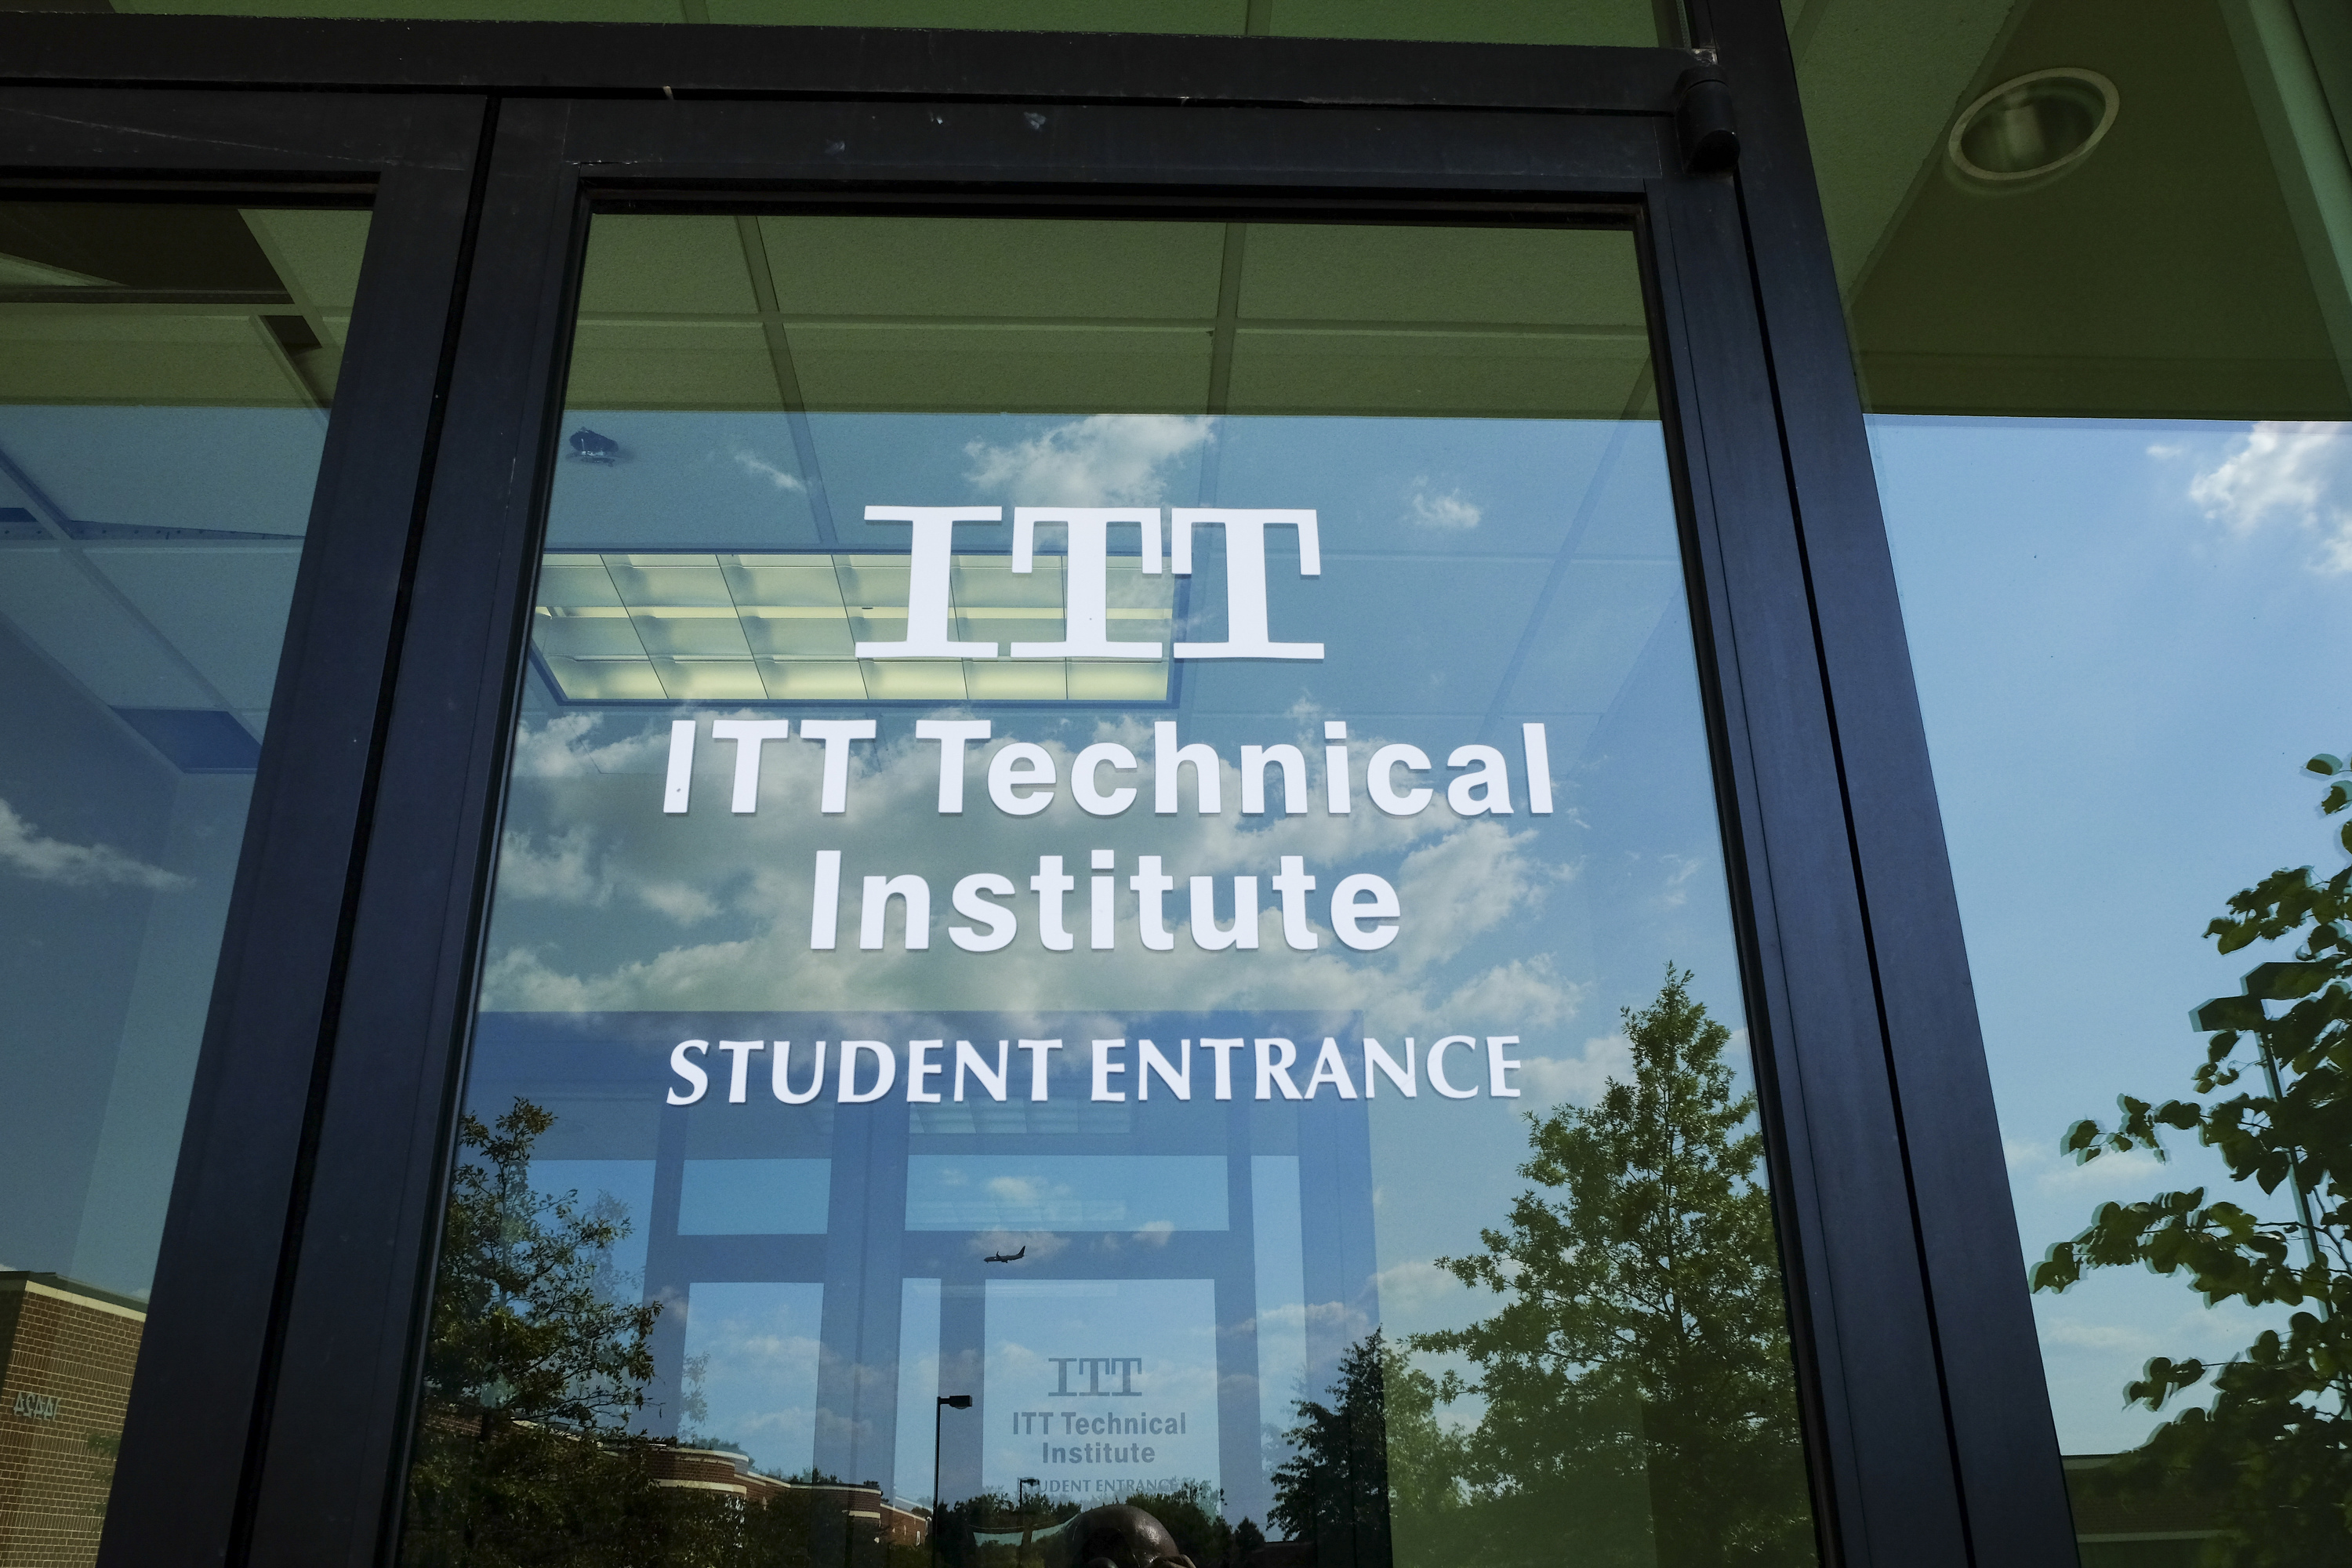 The Chantilly Campus of ITT Technical Institute sits closed and empty on Tuesday, September 6, 2016, in Chantilly, VA.